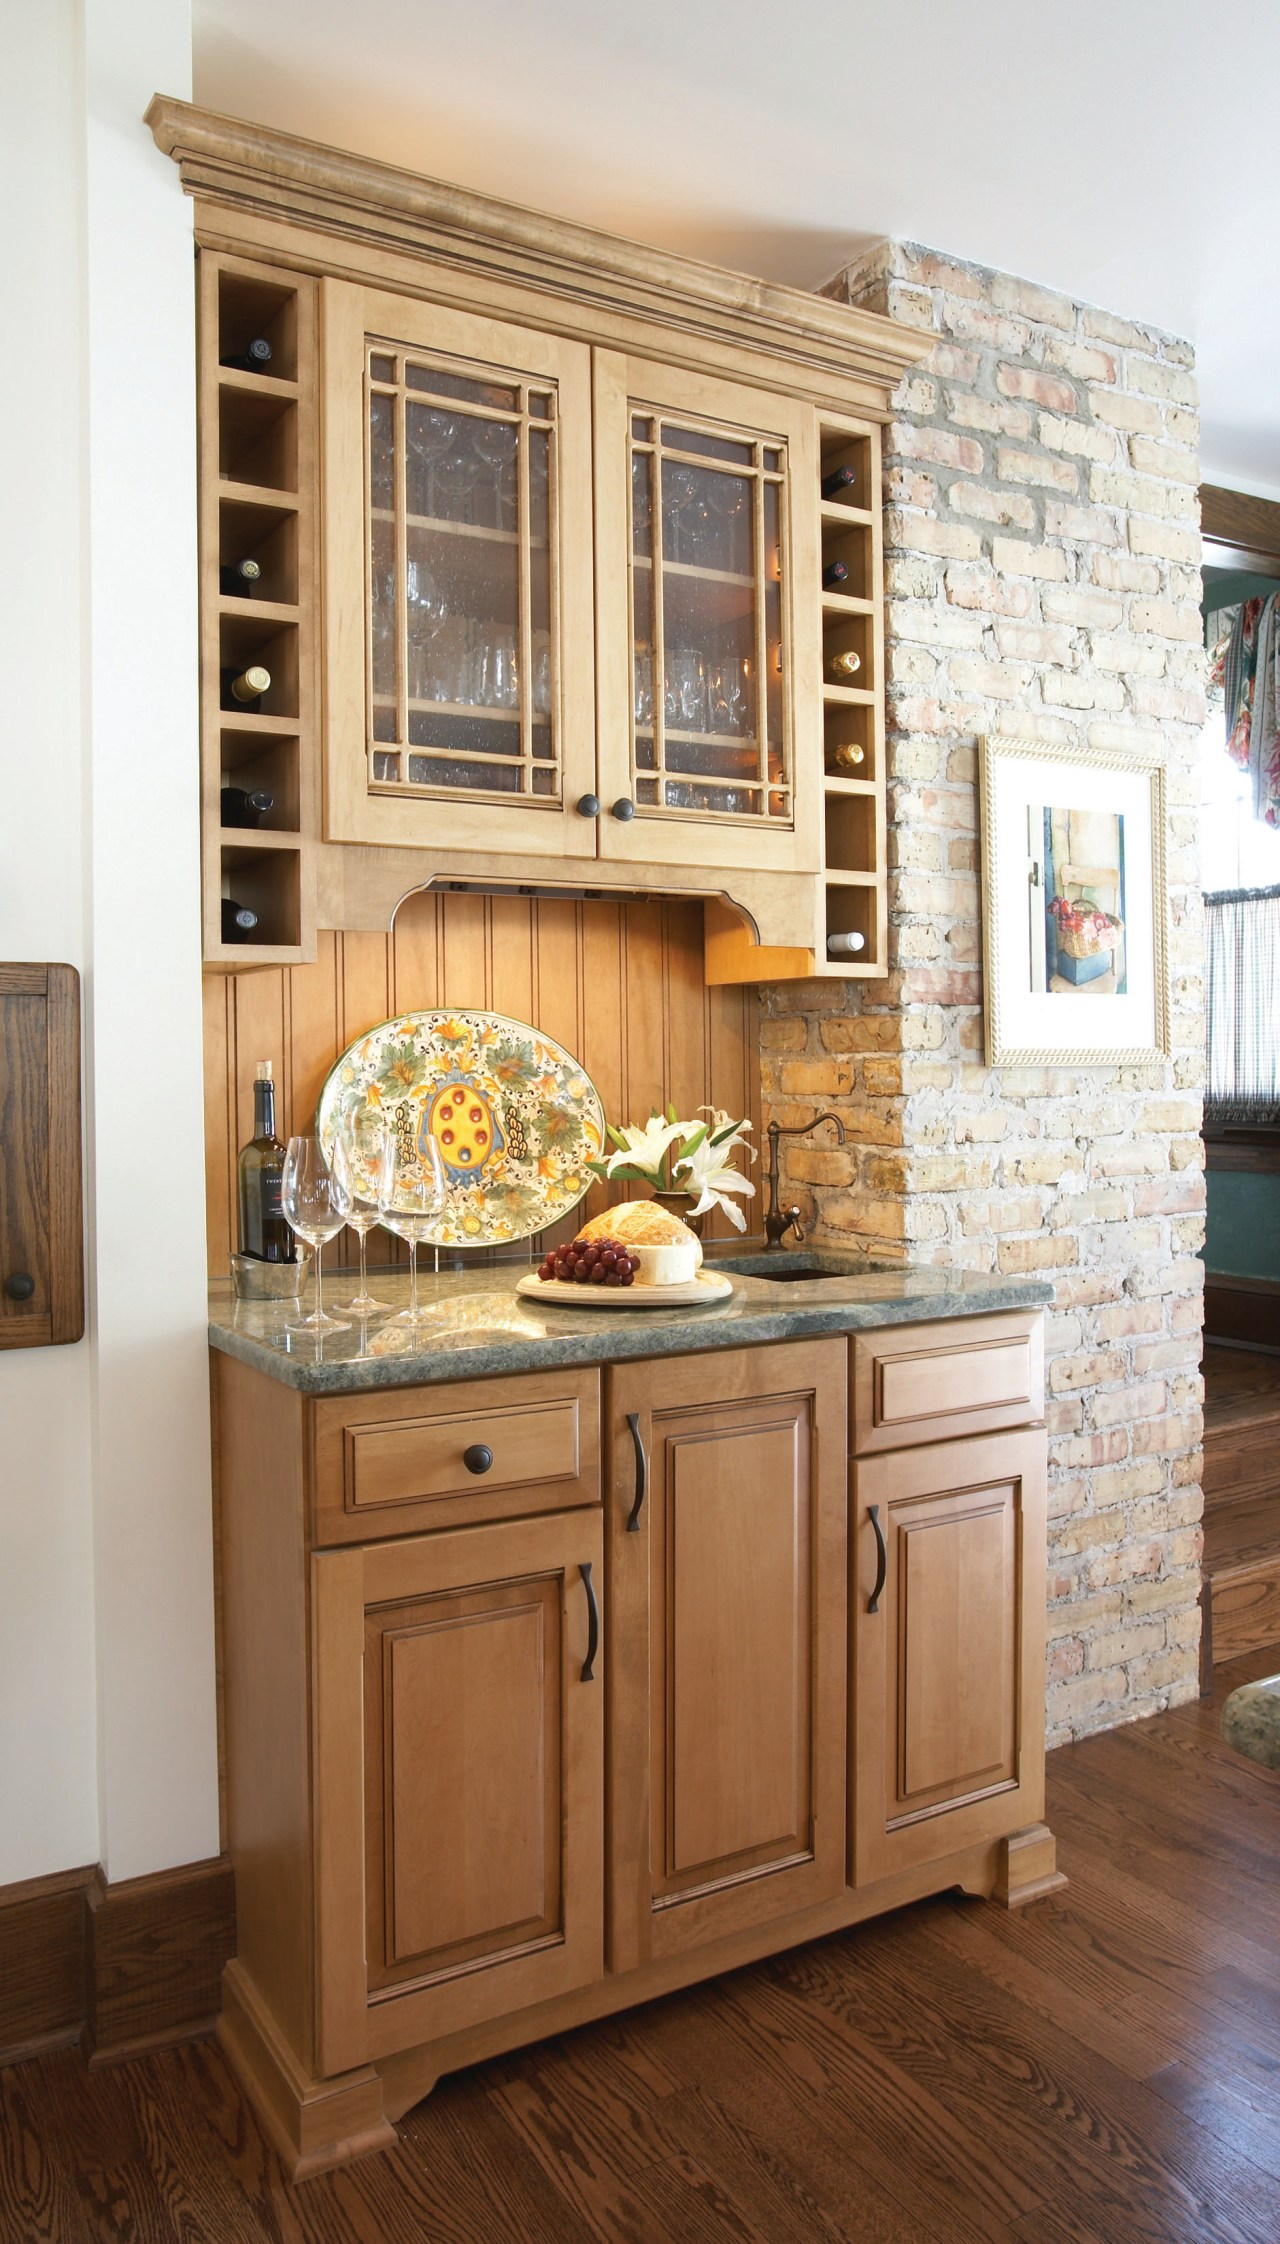 Built in bar with cabintery facing the kitchen cabinetry, countertop, cuisine classique, flooring, furniture, home, interior design, kitchen, room, wood stain, brown, white